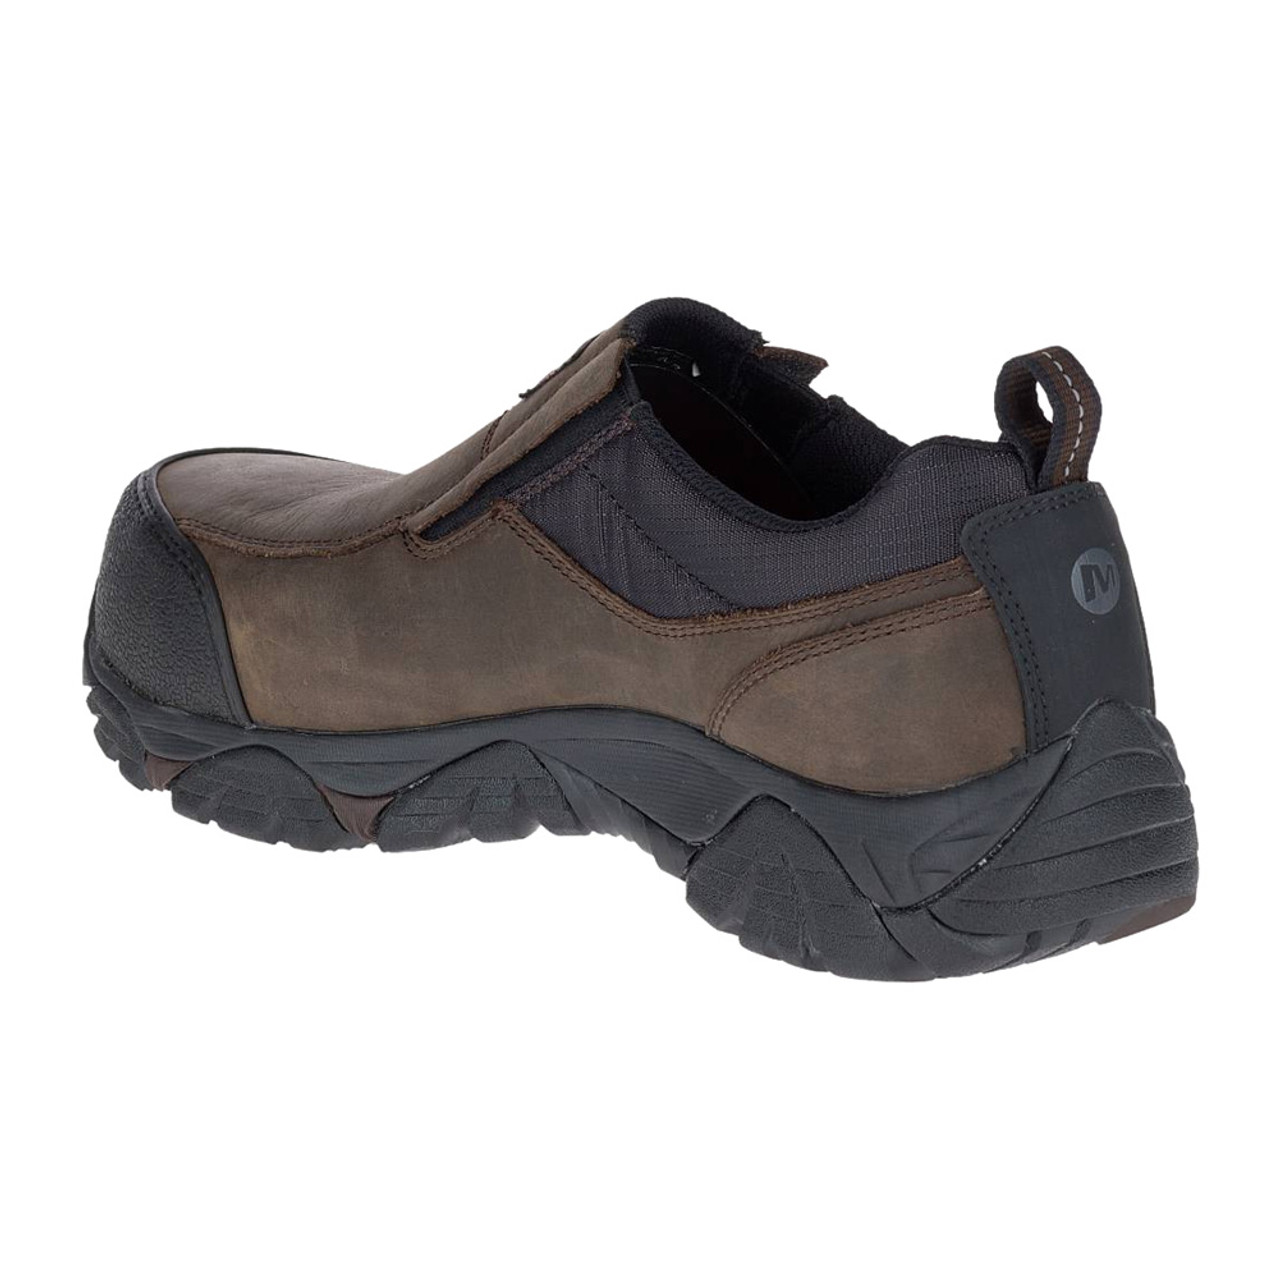 Merrell Moab Rover Leather Work Shoes Composite Safety Toe 8.5W